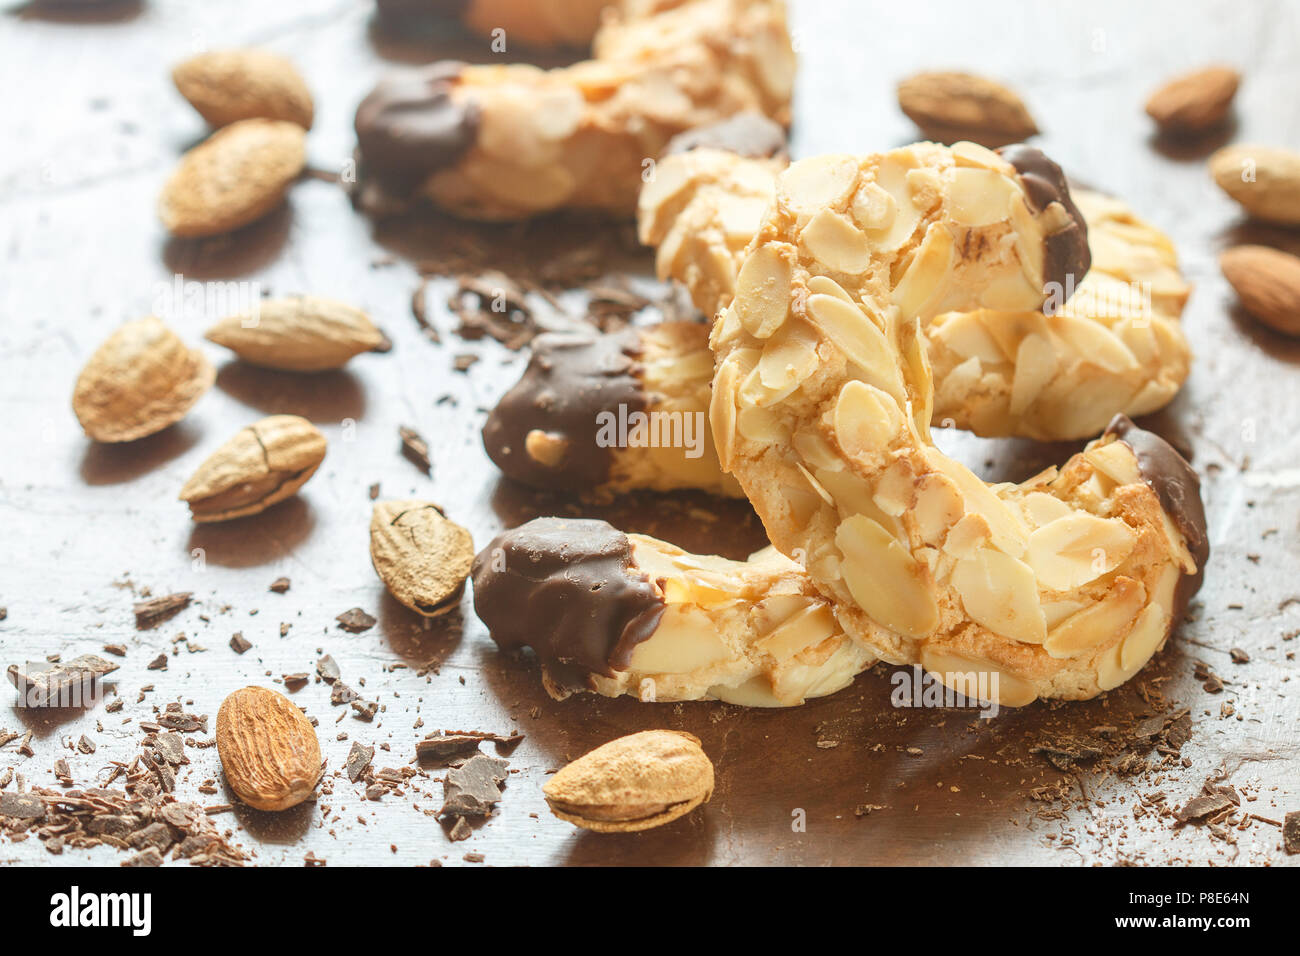 Homemade shortbread cookies with almonds and chocolate. Crispy dessert for tea and coffee. Selective focus - Stock Image